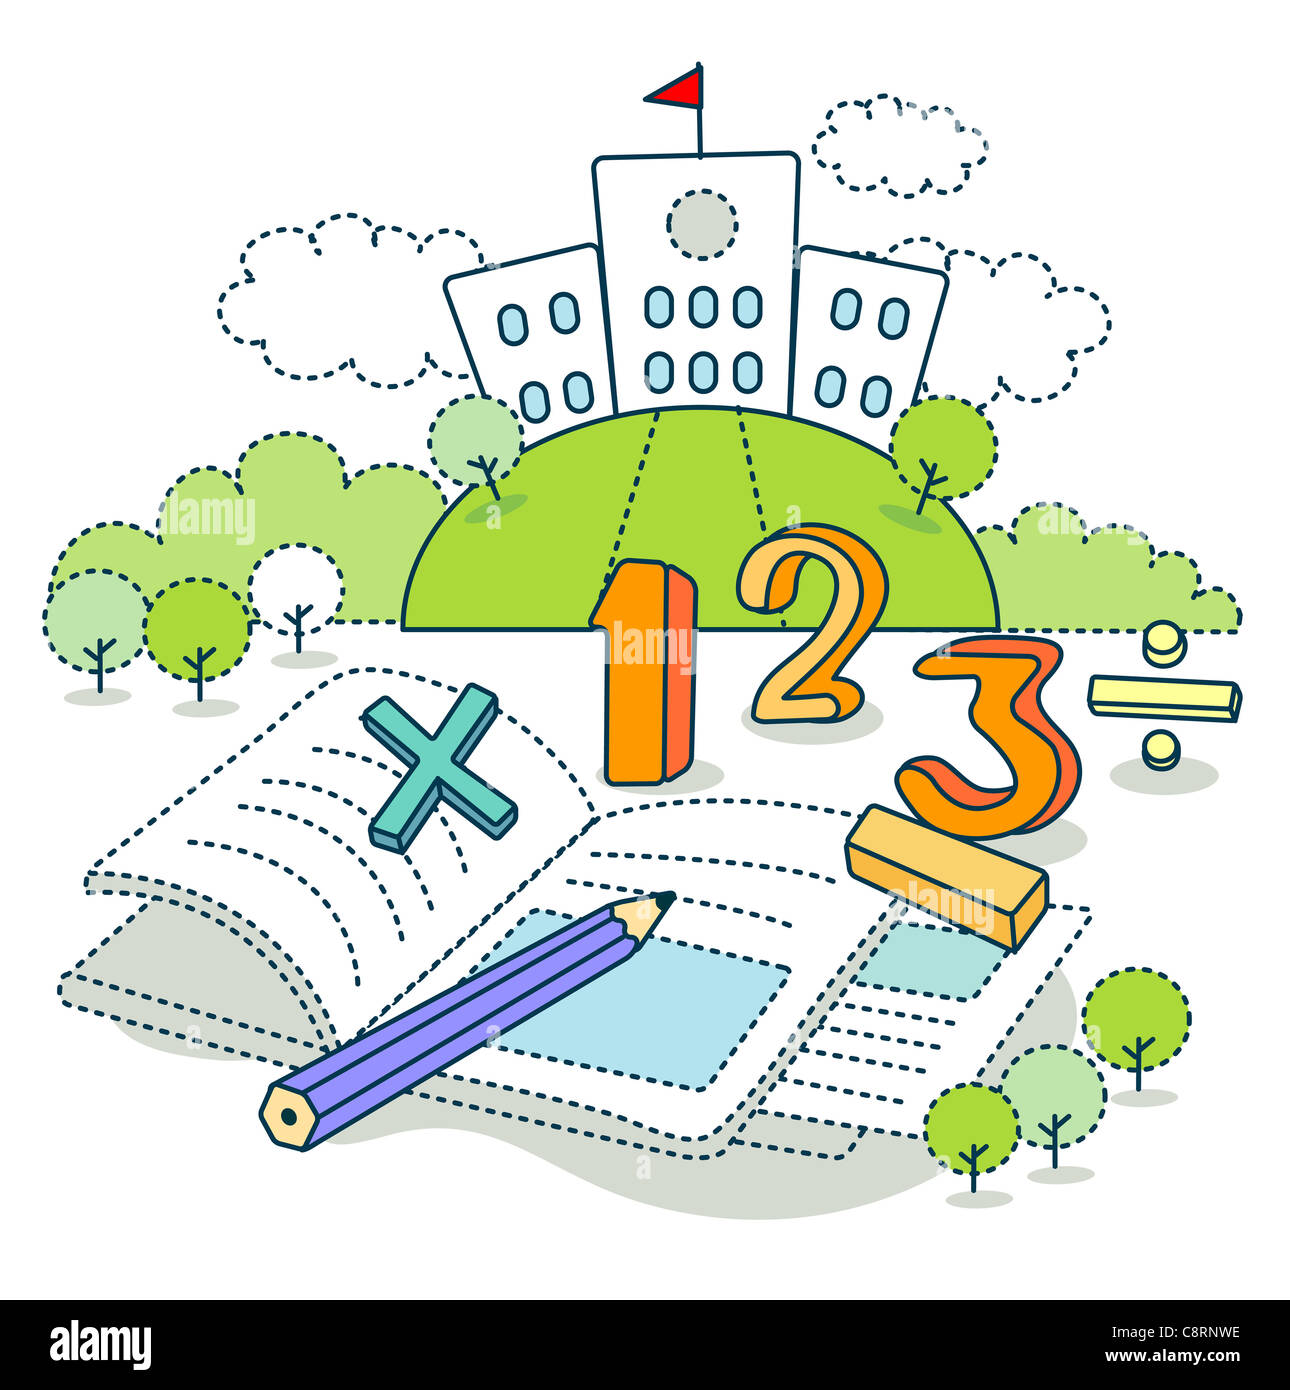 Math Symbols On Book With School In The Background Stock Photo